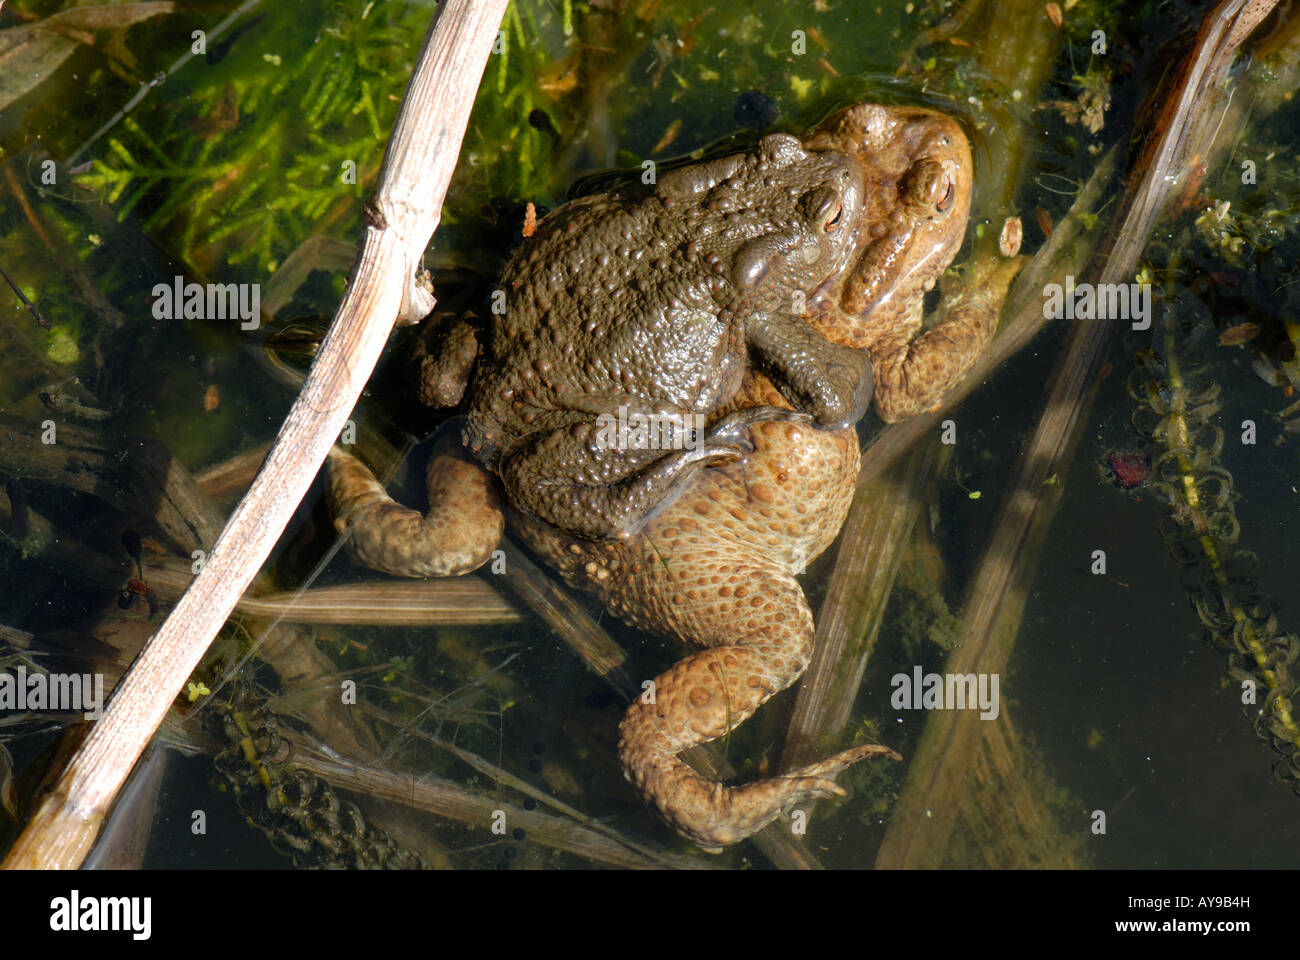 Common European toads Bufo bufo male on top of female during spawning - Stock Image